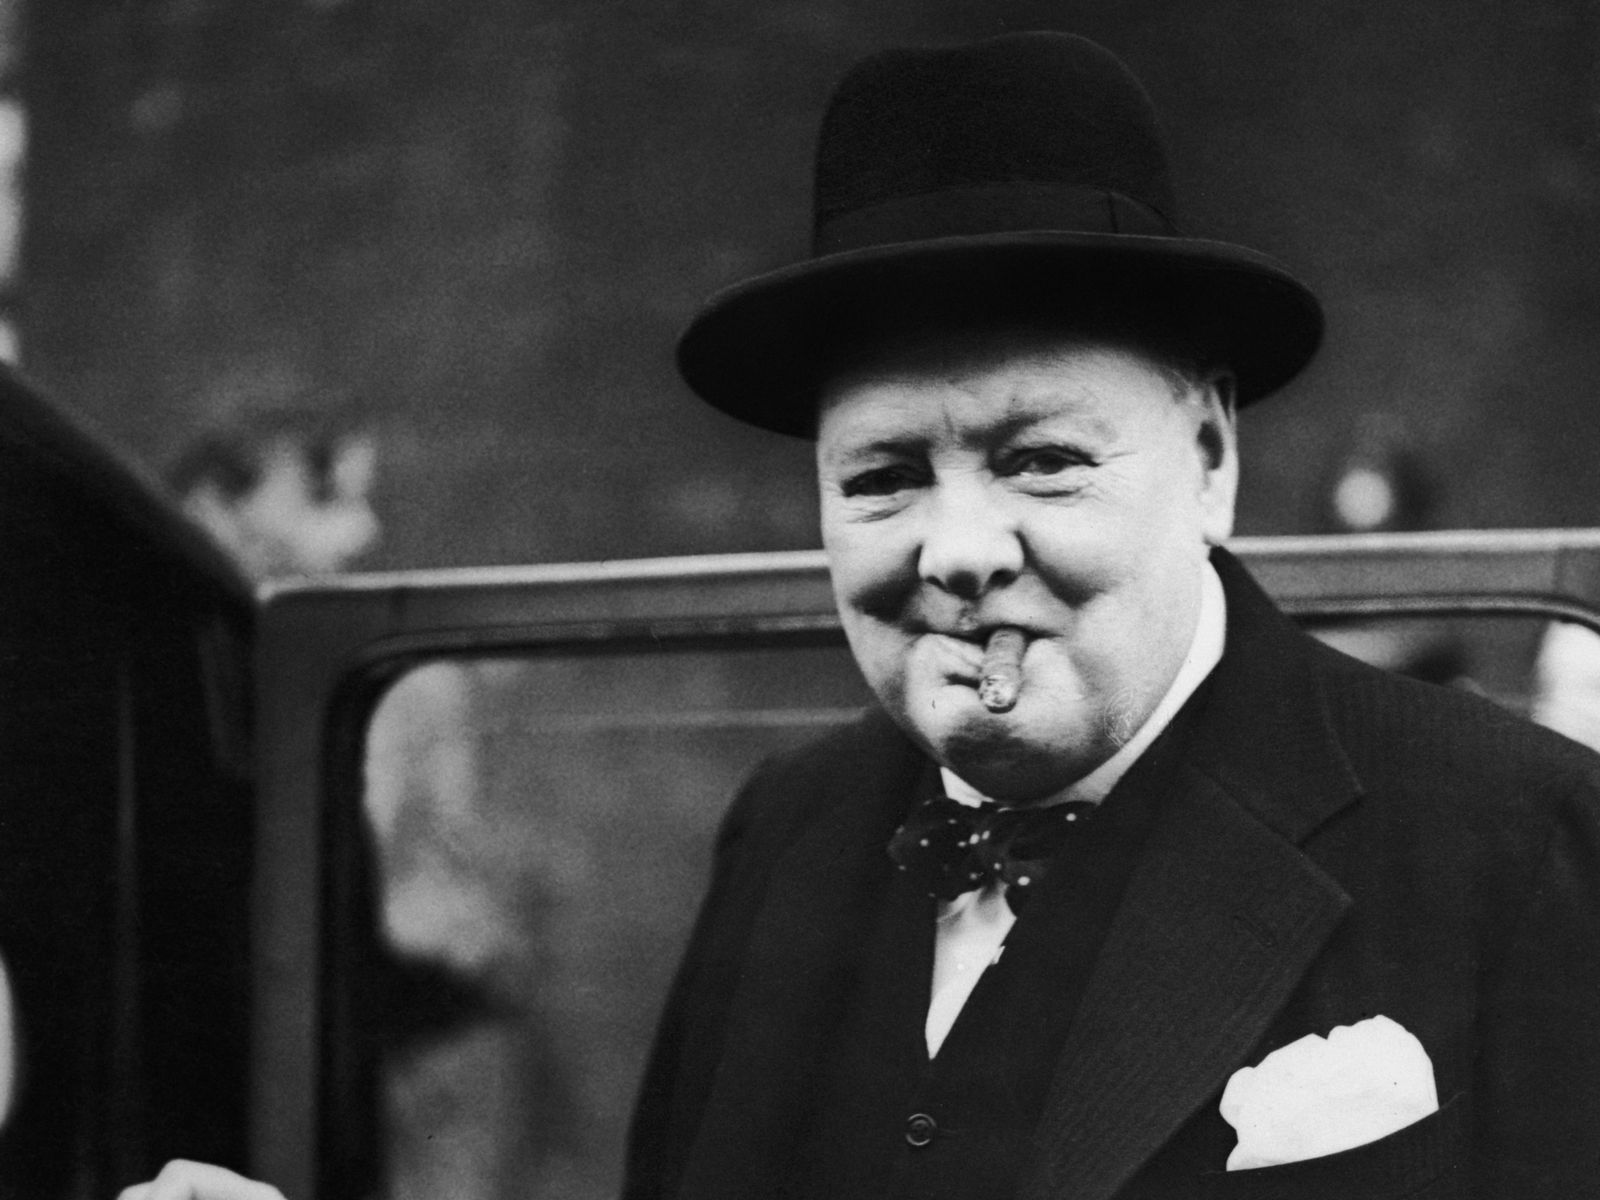 a history of the career of sir winston churchill This biography examines the prime minister sir winston churchill it explores his early life, military service, and finally his political career in which he.